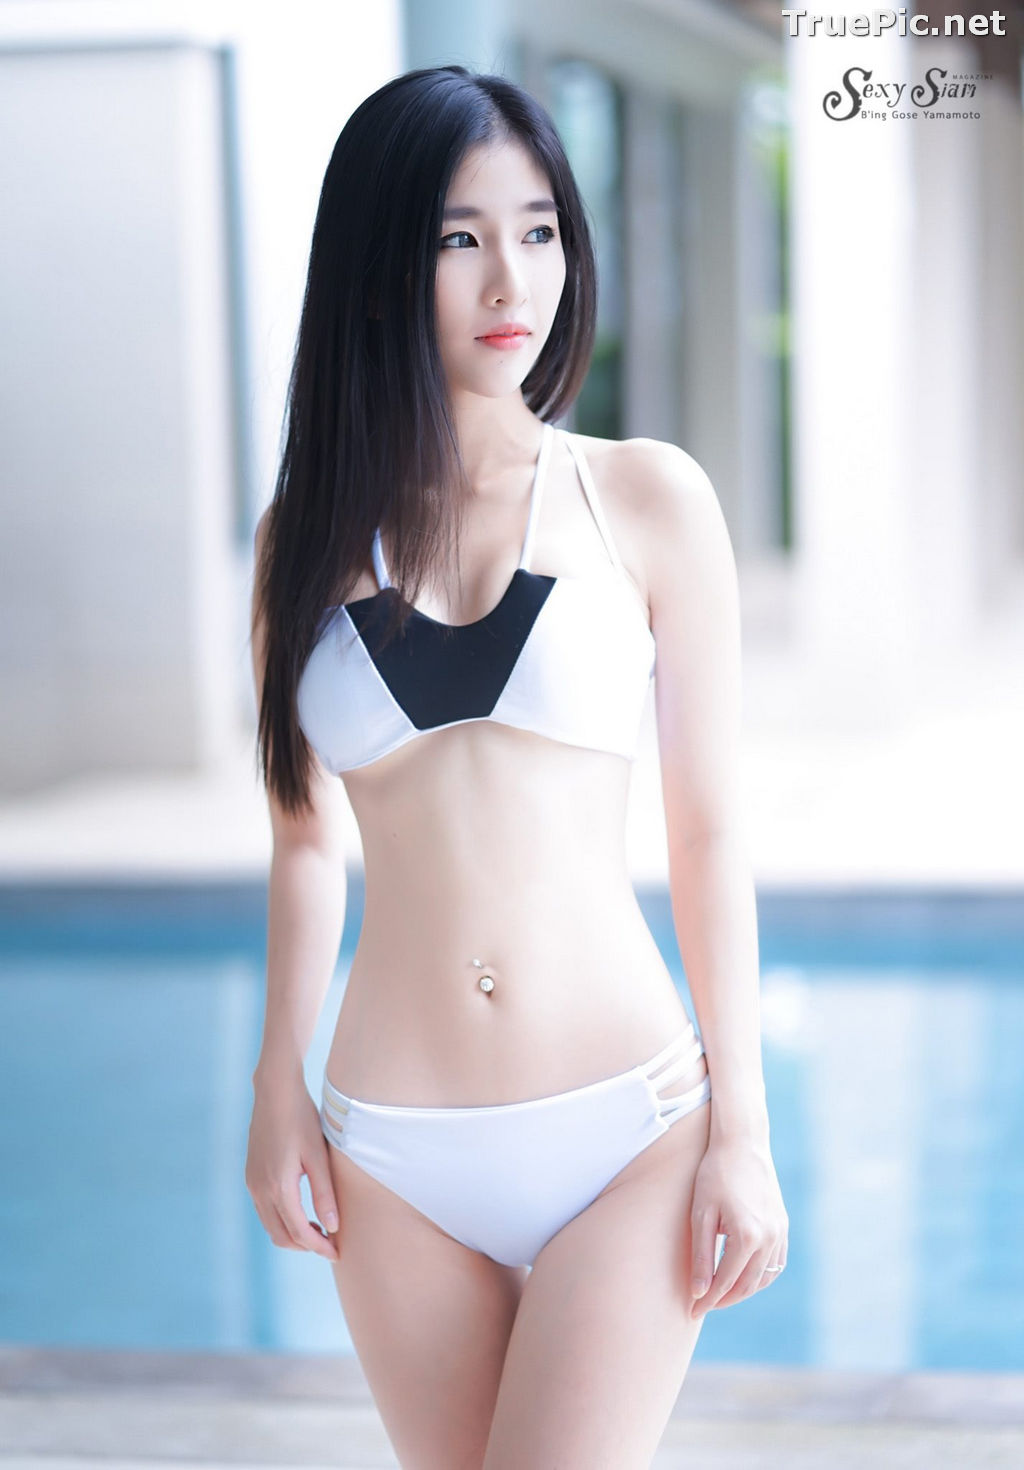 Image Thailand Model - Ohly Atita - Summer Bikini Collection - TruePic.net - Picture-6